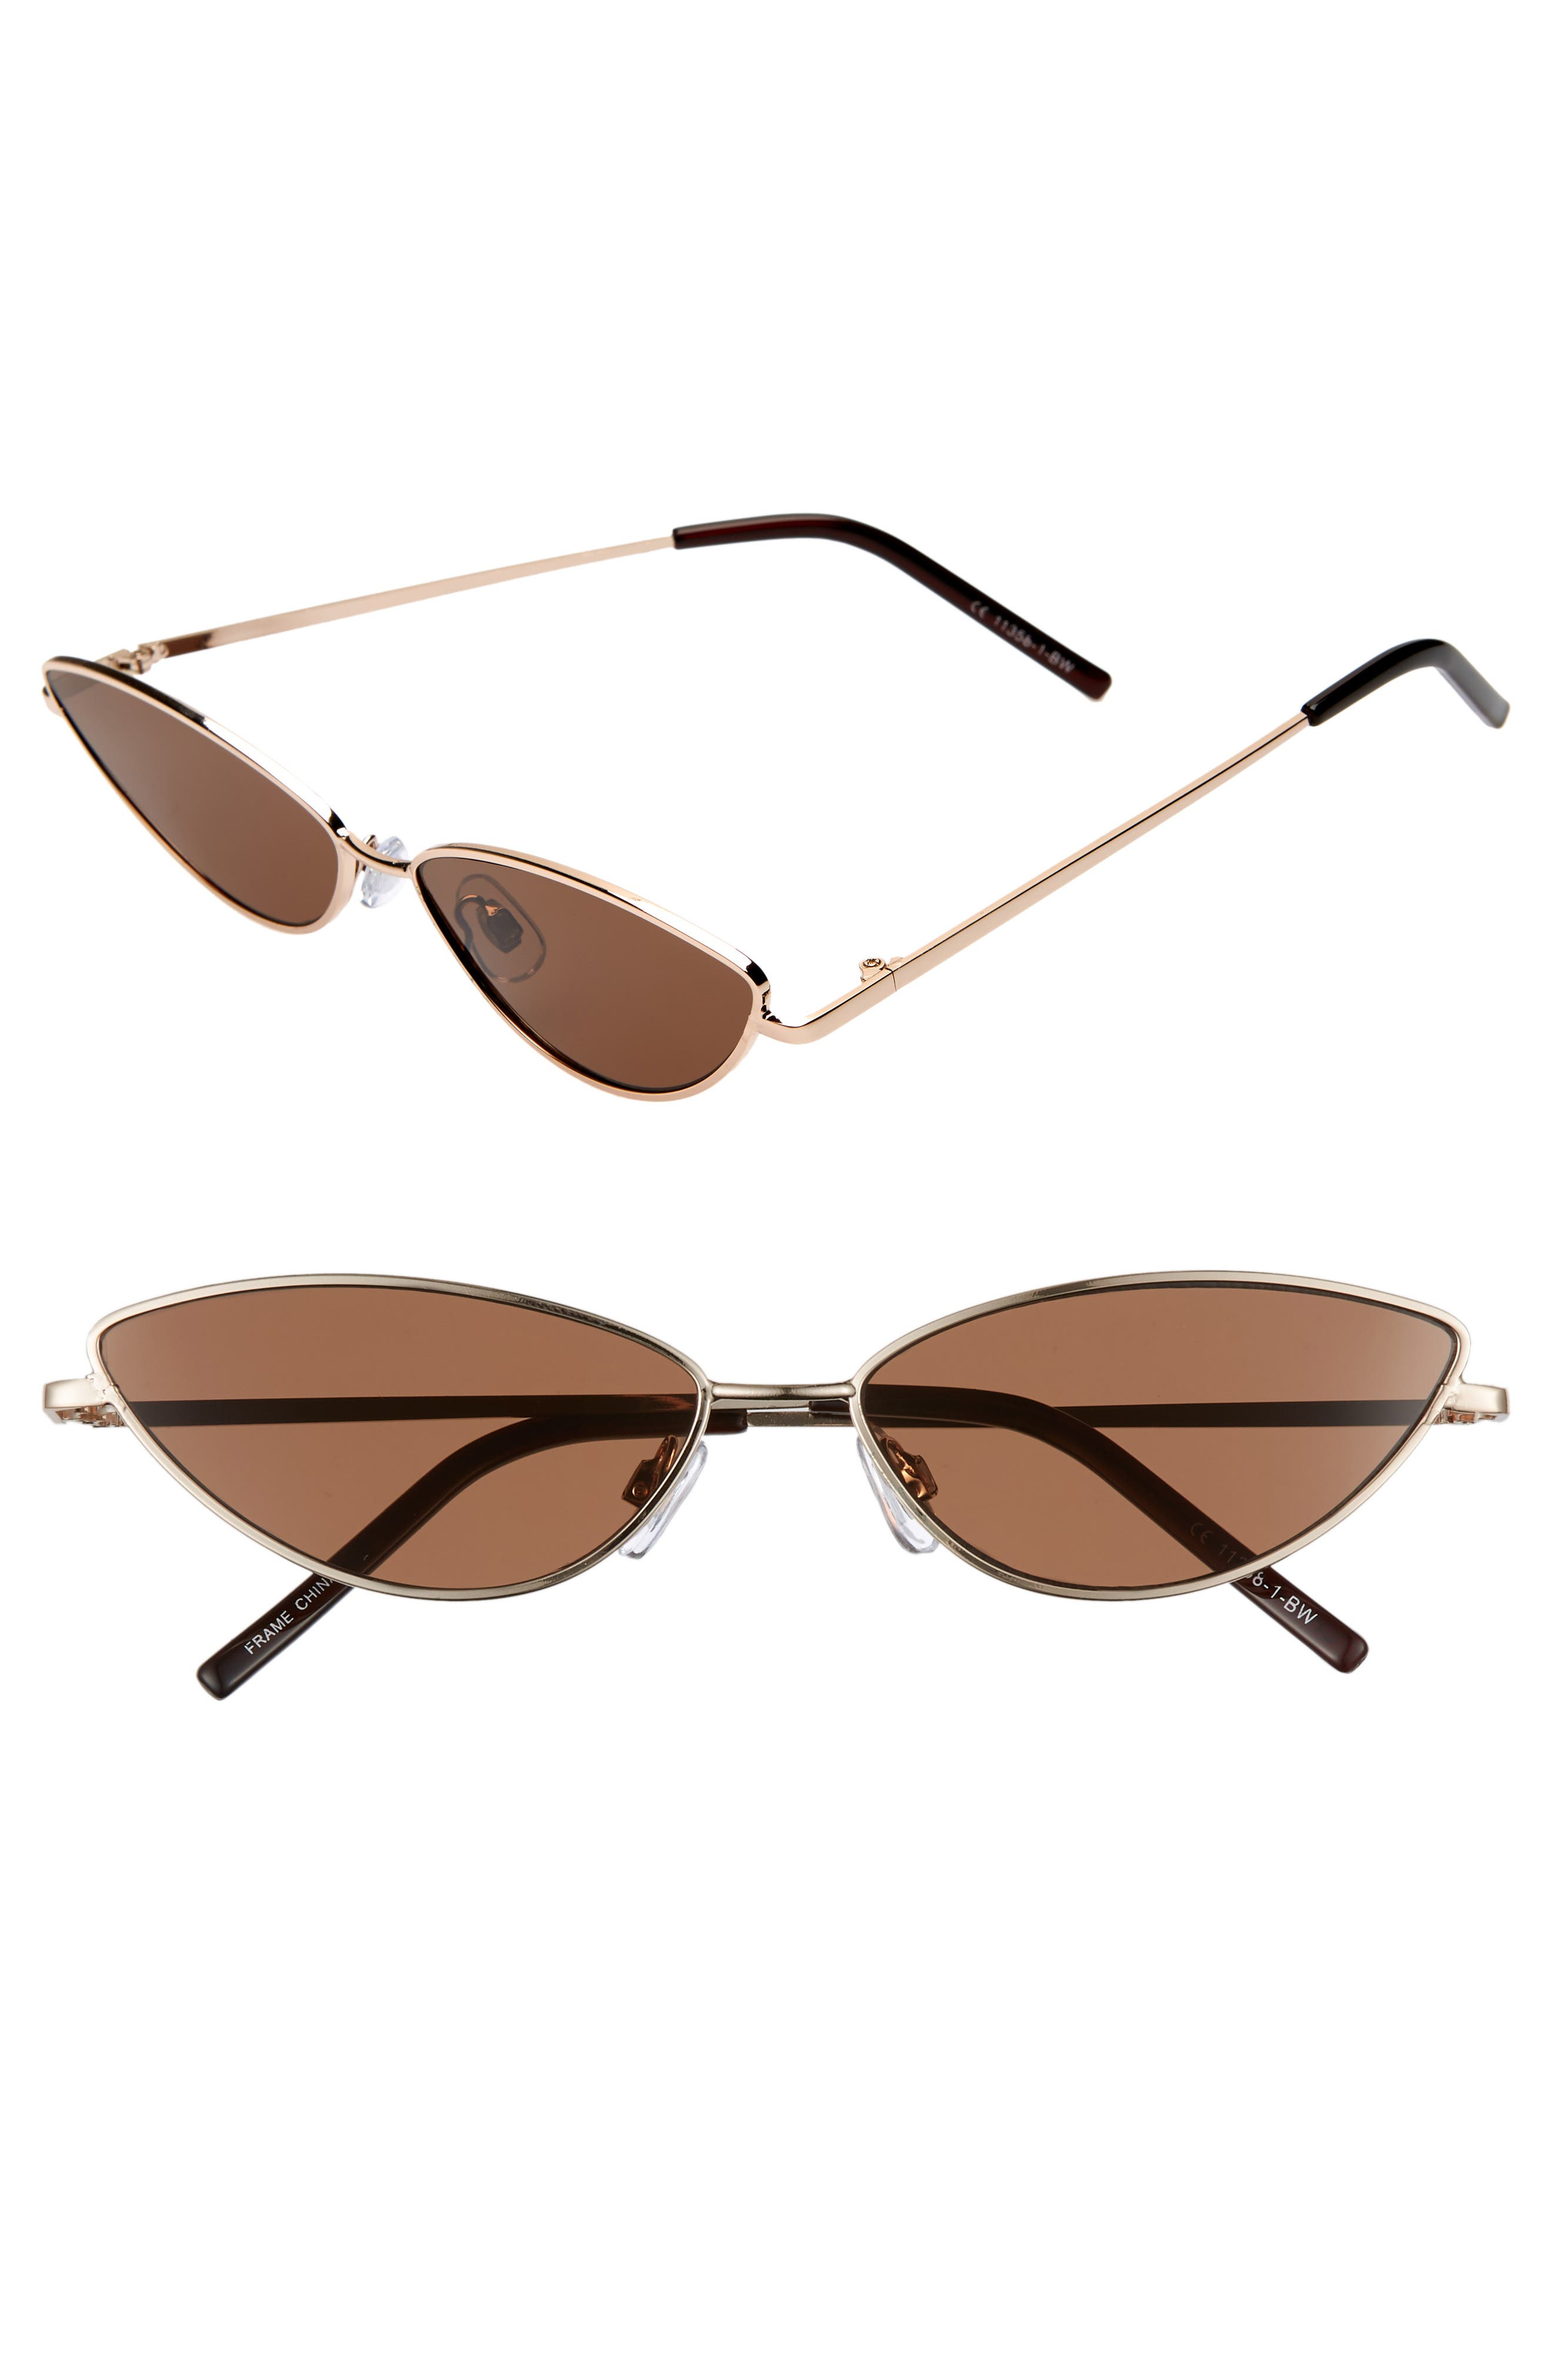 57mm Wide Cat Eye Sunglasses,                             Main thumbnail 1, color,                             GOLD/ BROWN